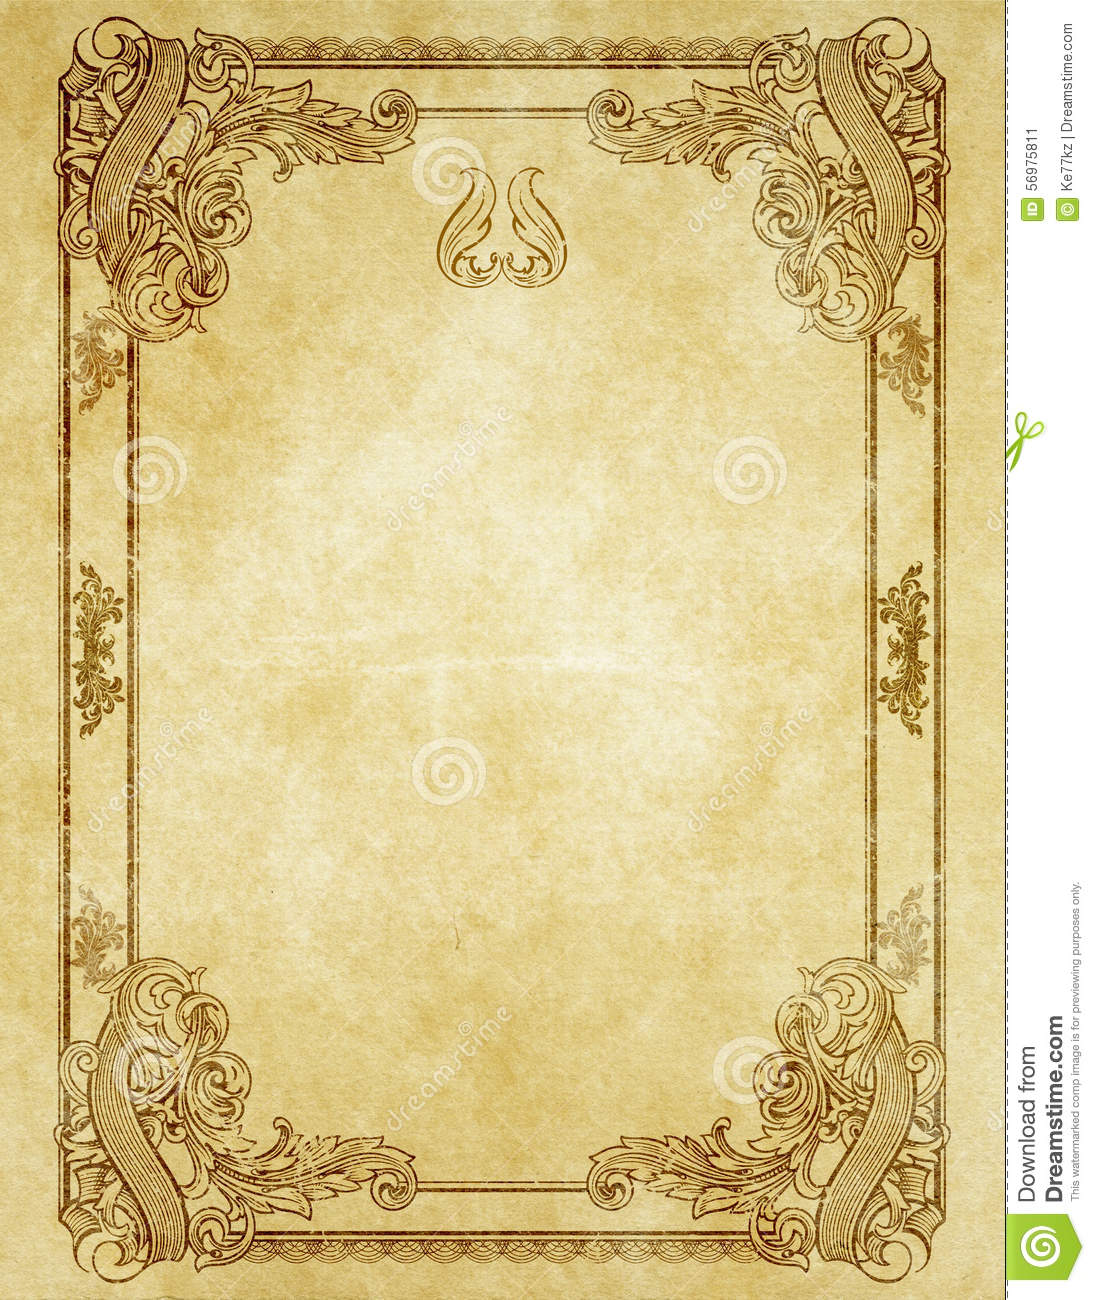 Custom Card Template french id card template : Grunge Paper With Antique Frame. Stock Illustration - Image: 56975811